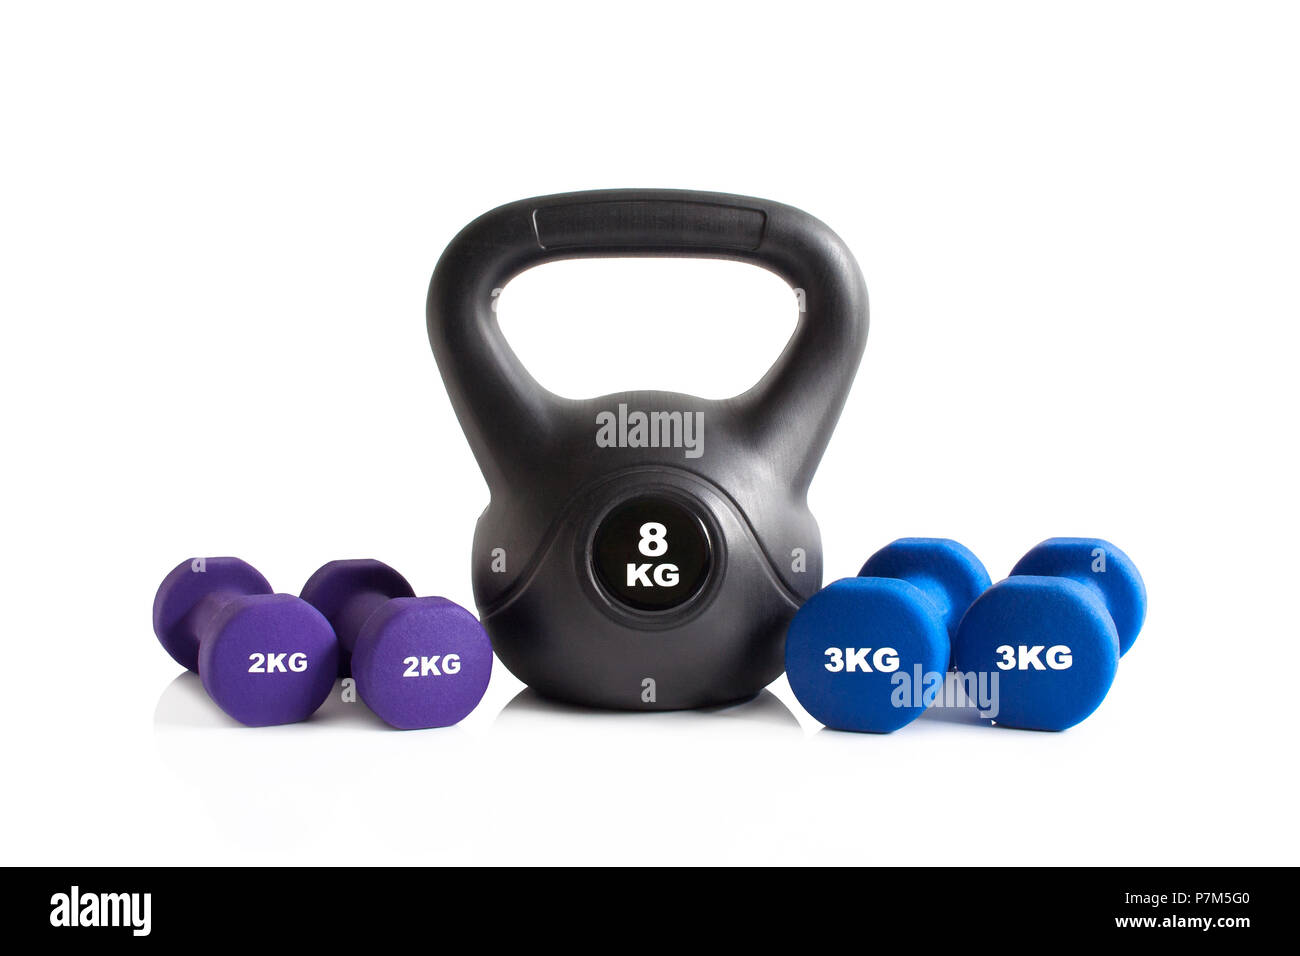 Gym exercise equipment isolated on a white background. - Stock Image